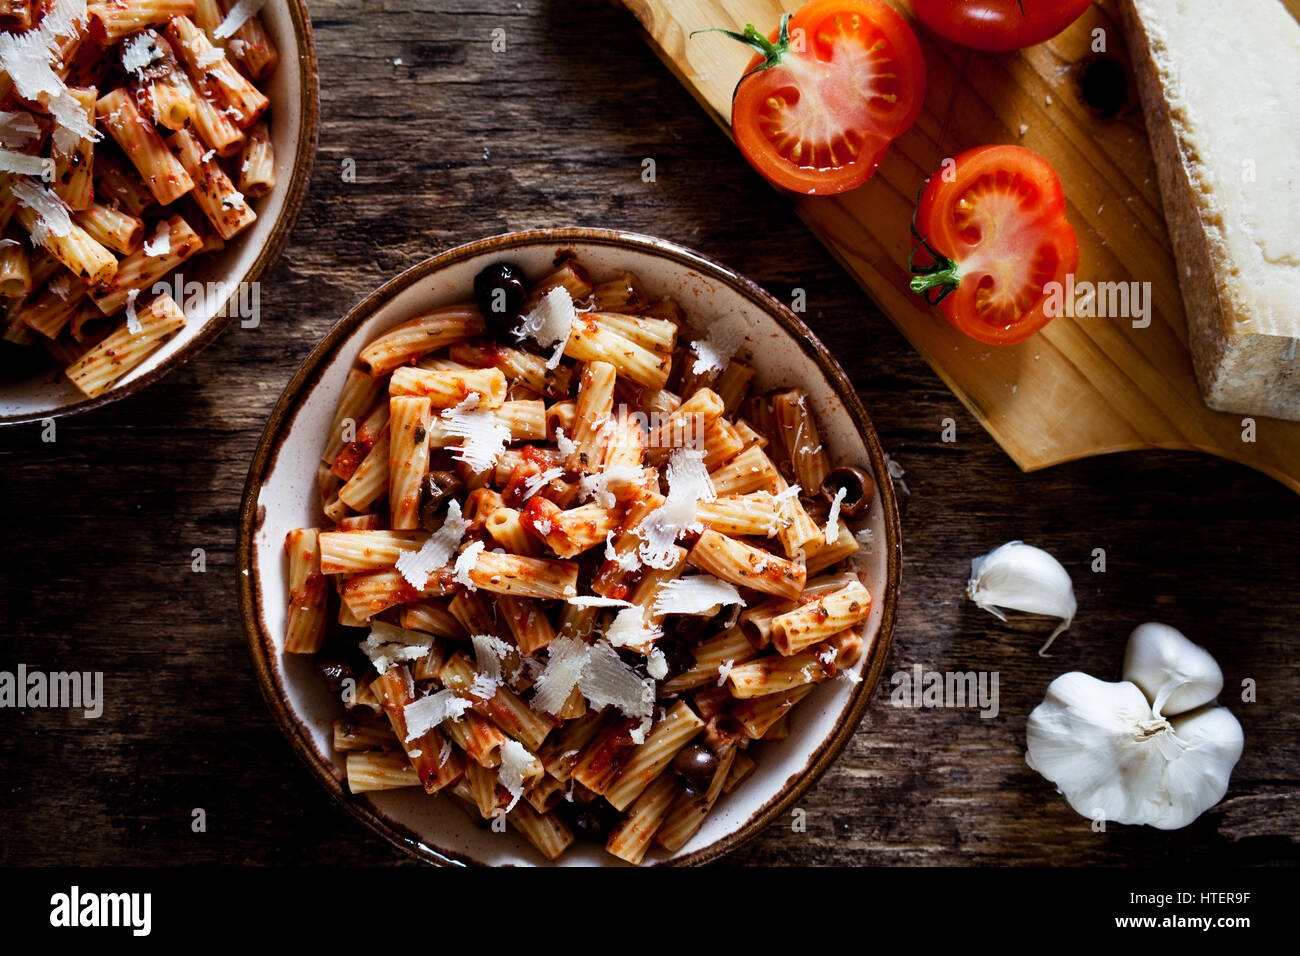 Couple of plates of rigatoni pasta with tomato sauce and olives - Stock Image